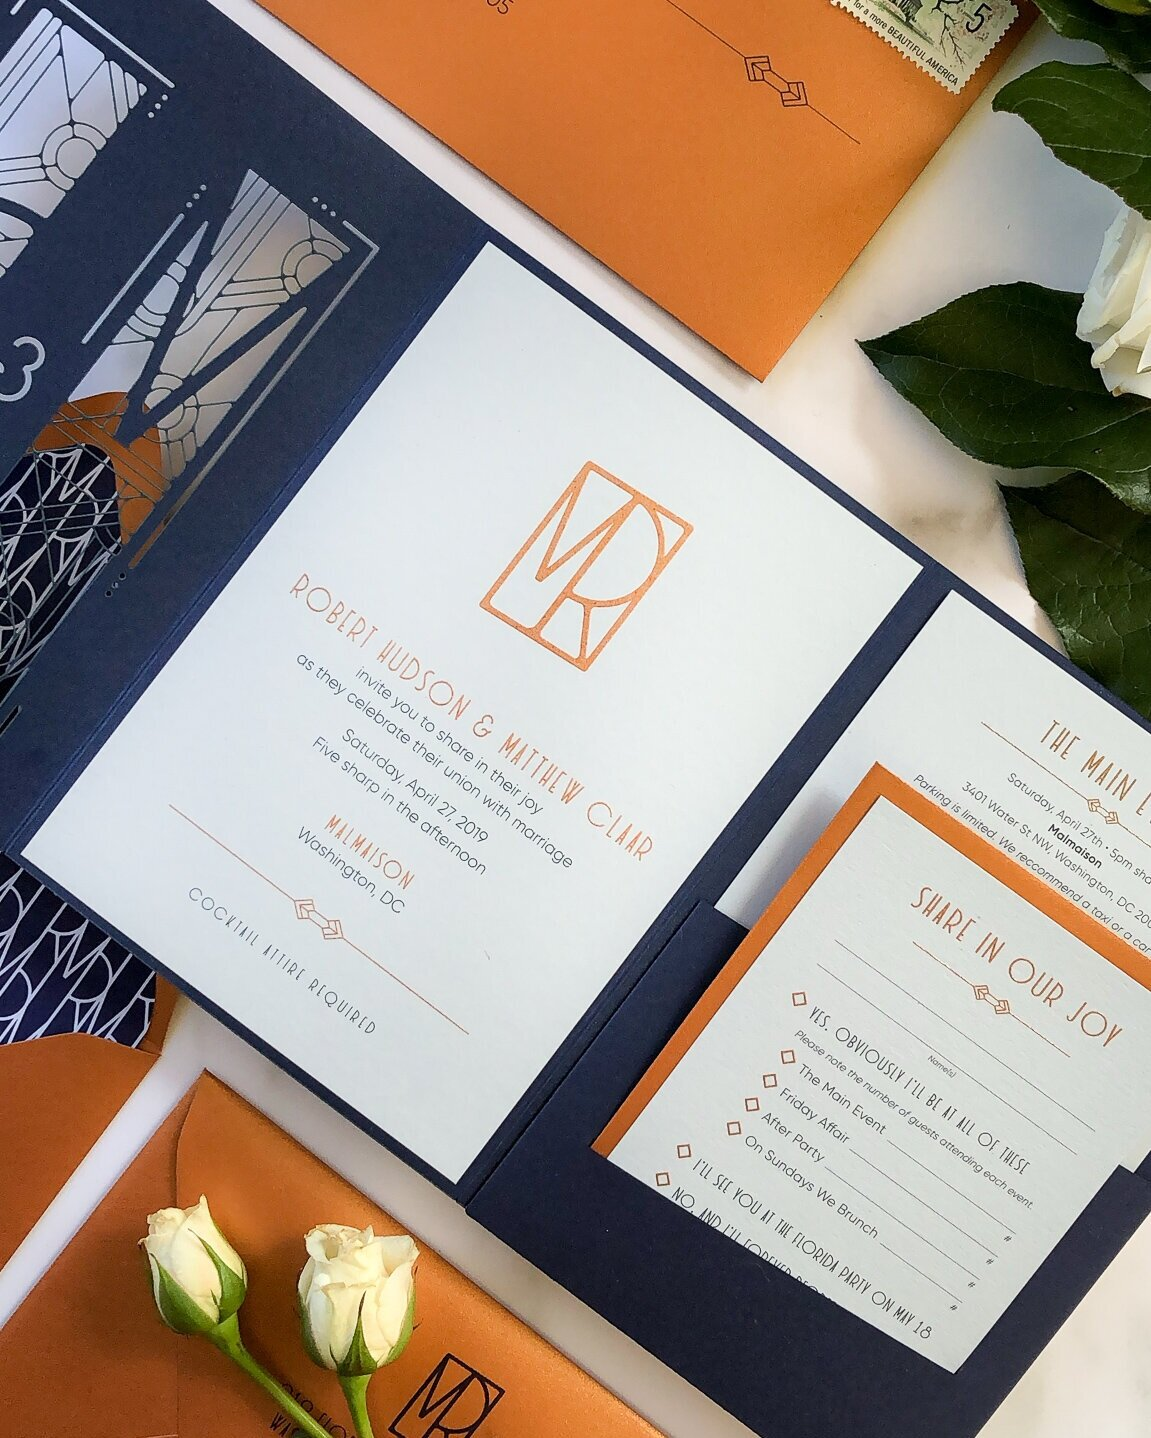 Copper Thermography paired with Digital Printing on all cards. Digital Printing on Envelopes.